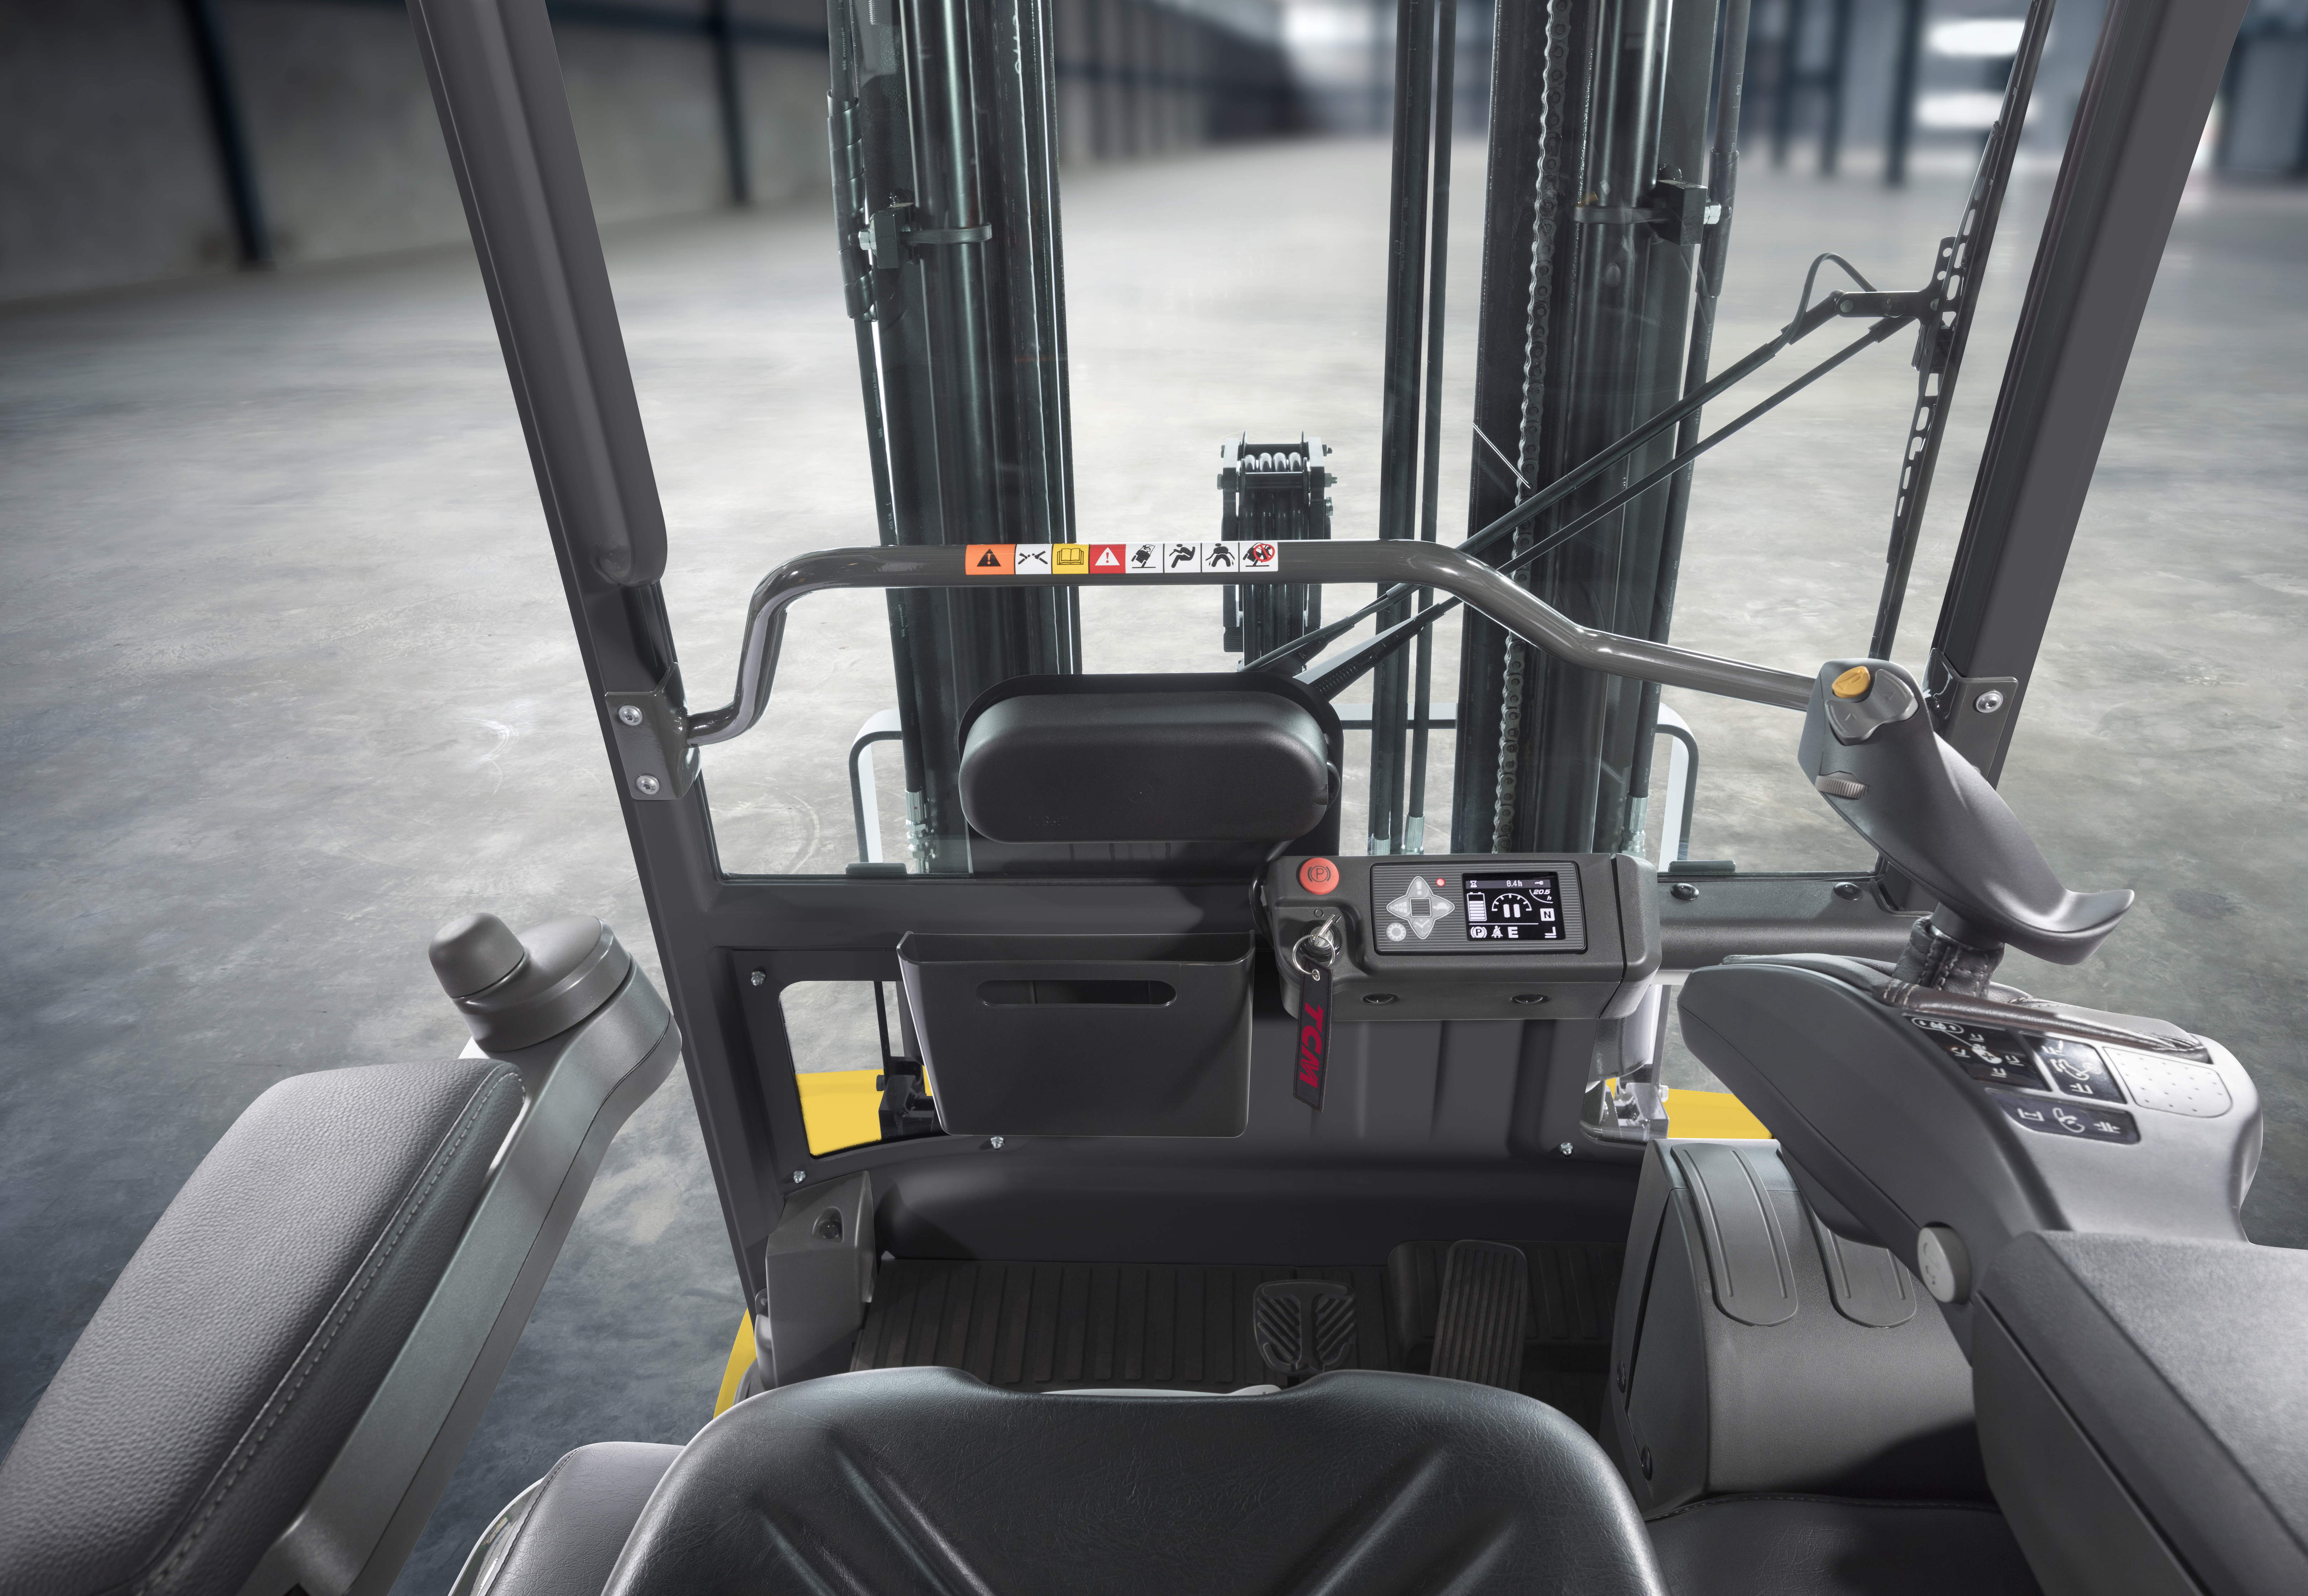 TCM Achieves Finalist Status in the FLTA Awards 2020 for Innovation and Ergonomics